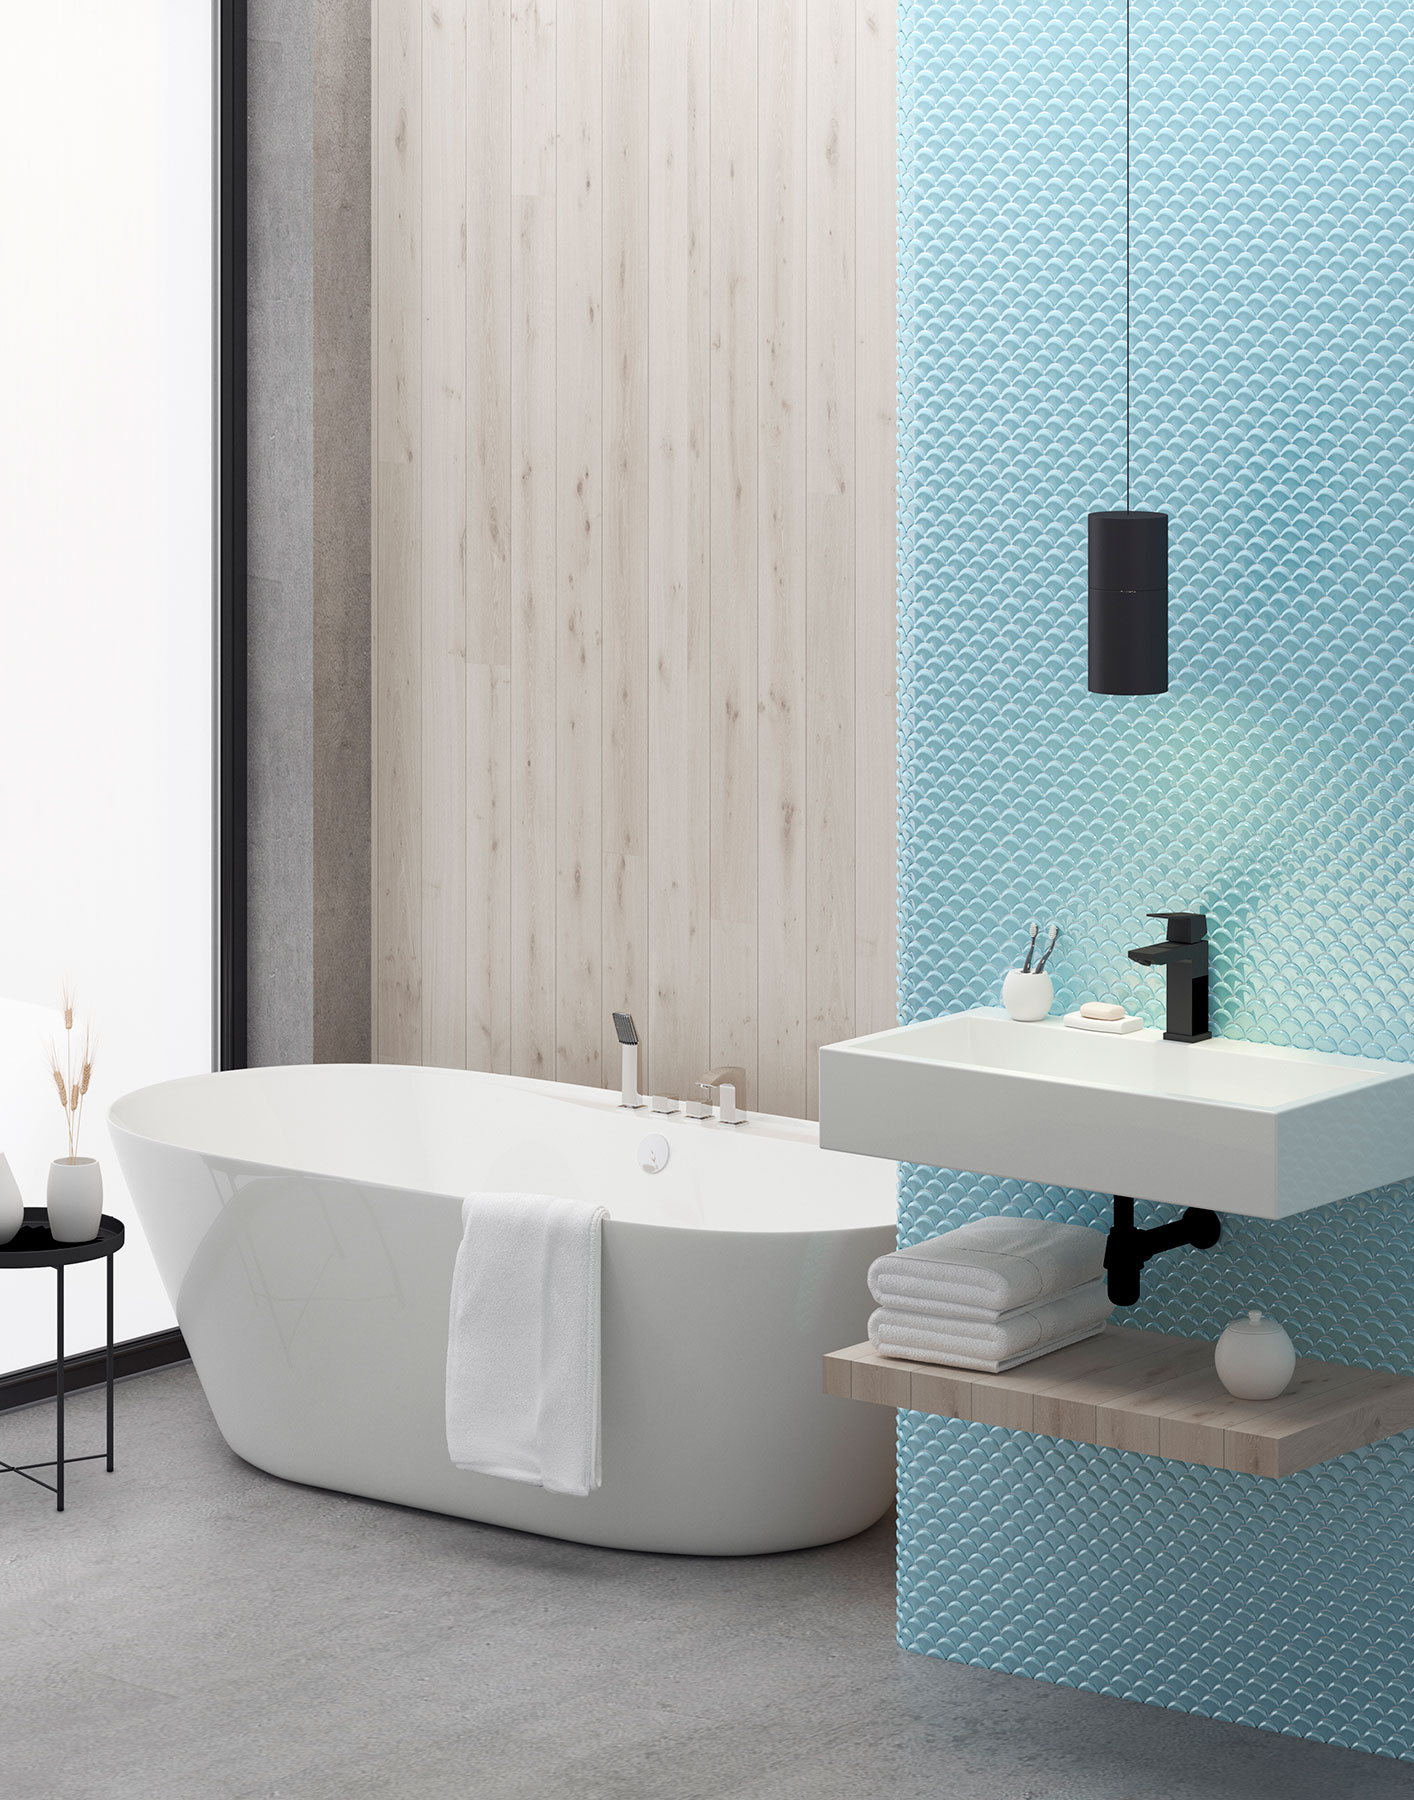 Dimension Tender Br - Mosaico Decorativo: Tendencia Para Baños Y Cocinas 2021 - Decoración